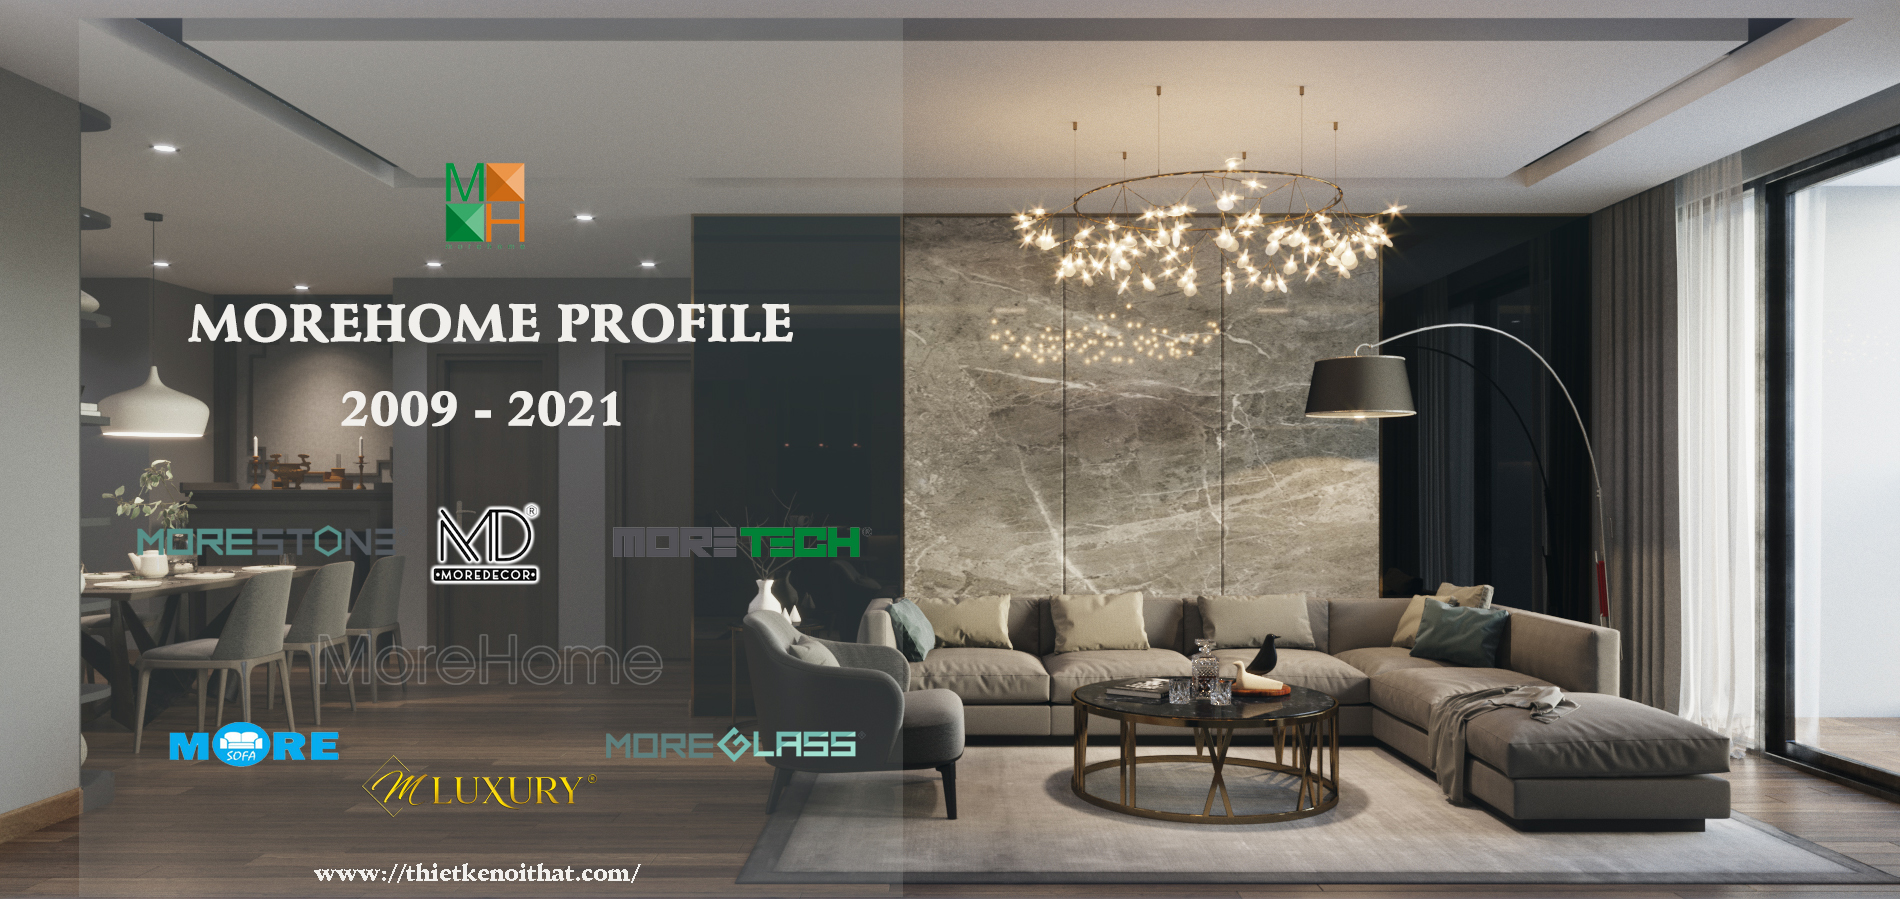 Morehome profile 2021